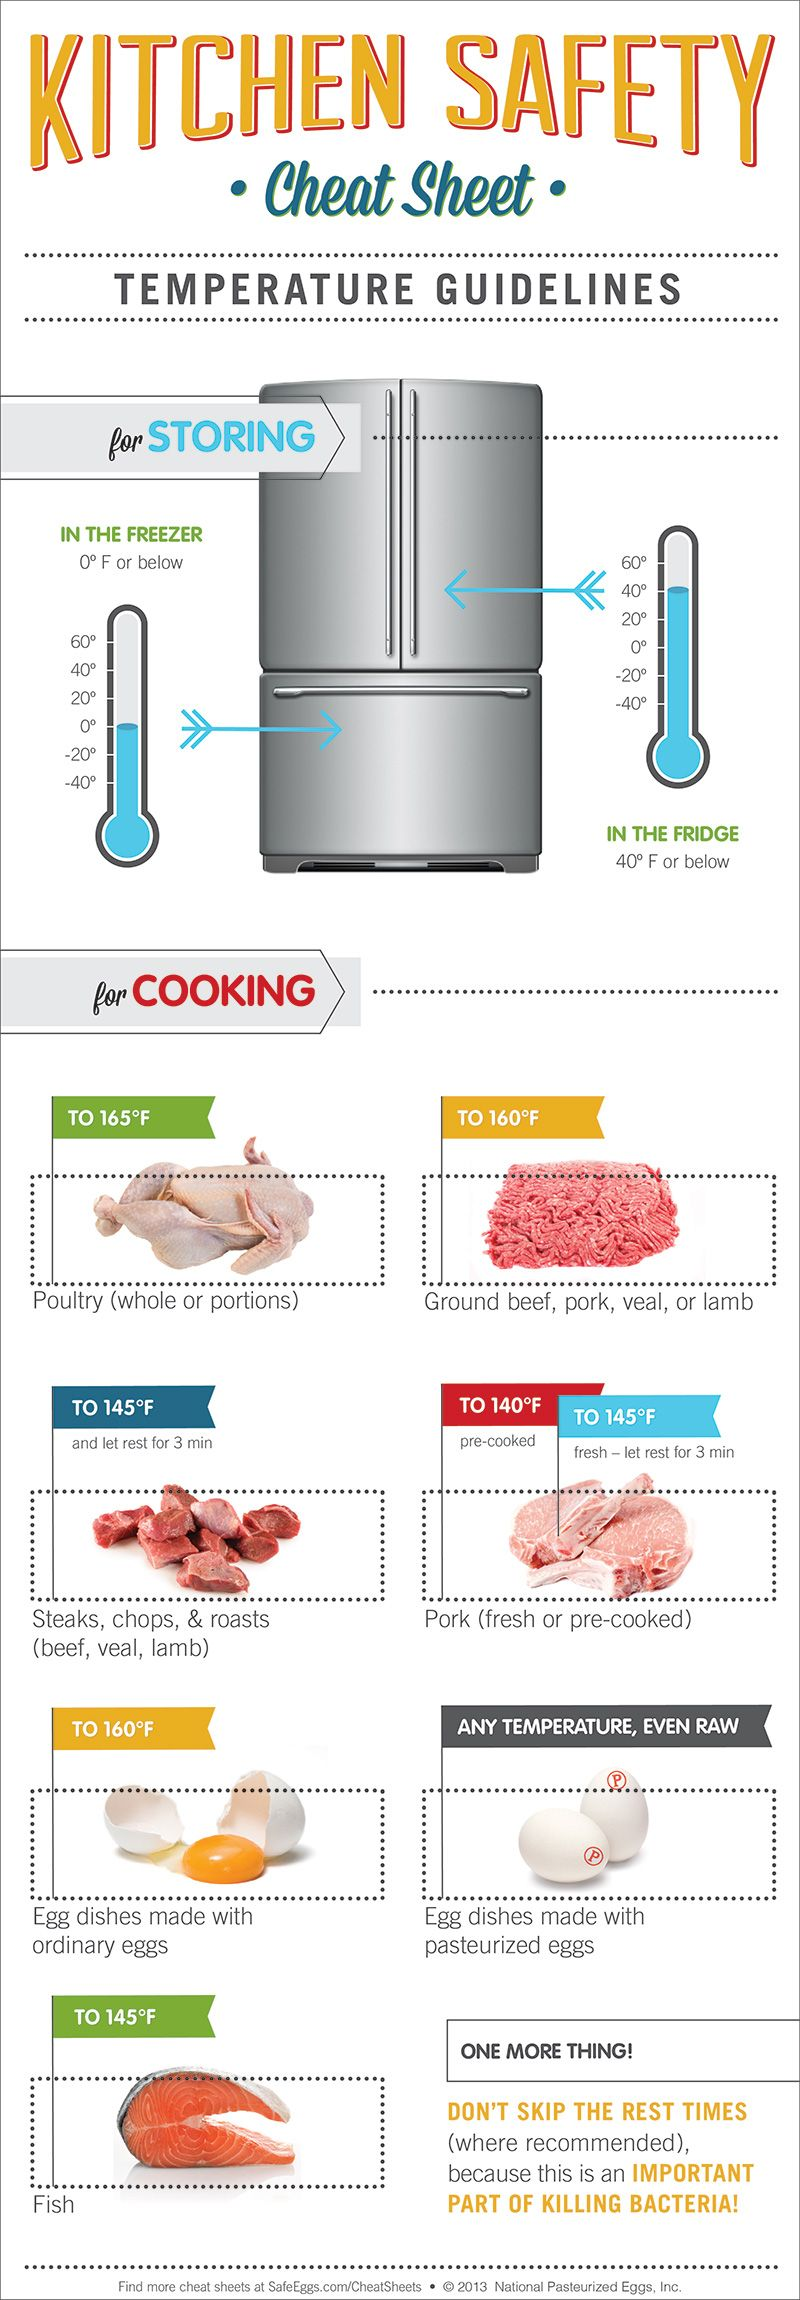 Food temperature guidelines for storing and cooking - SafeEggs.com ...